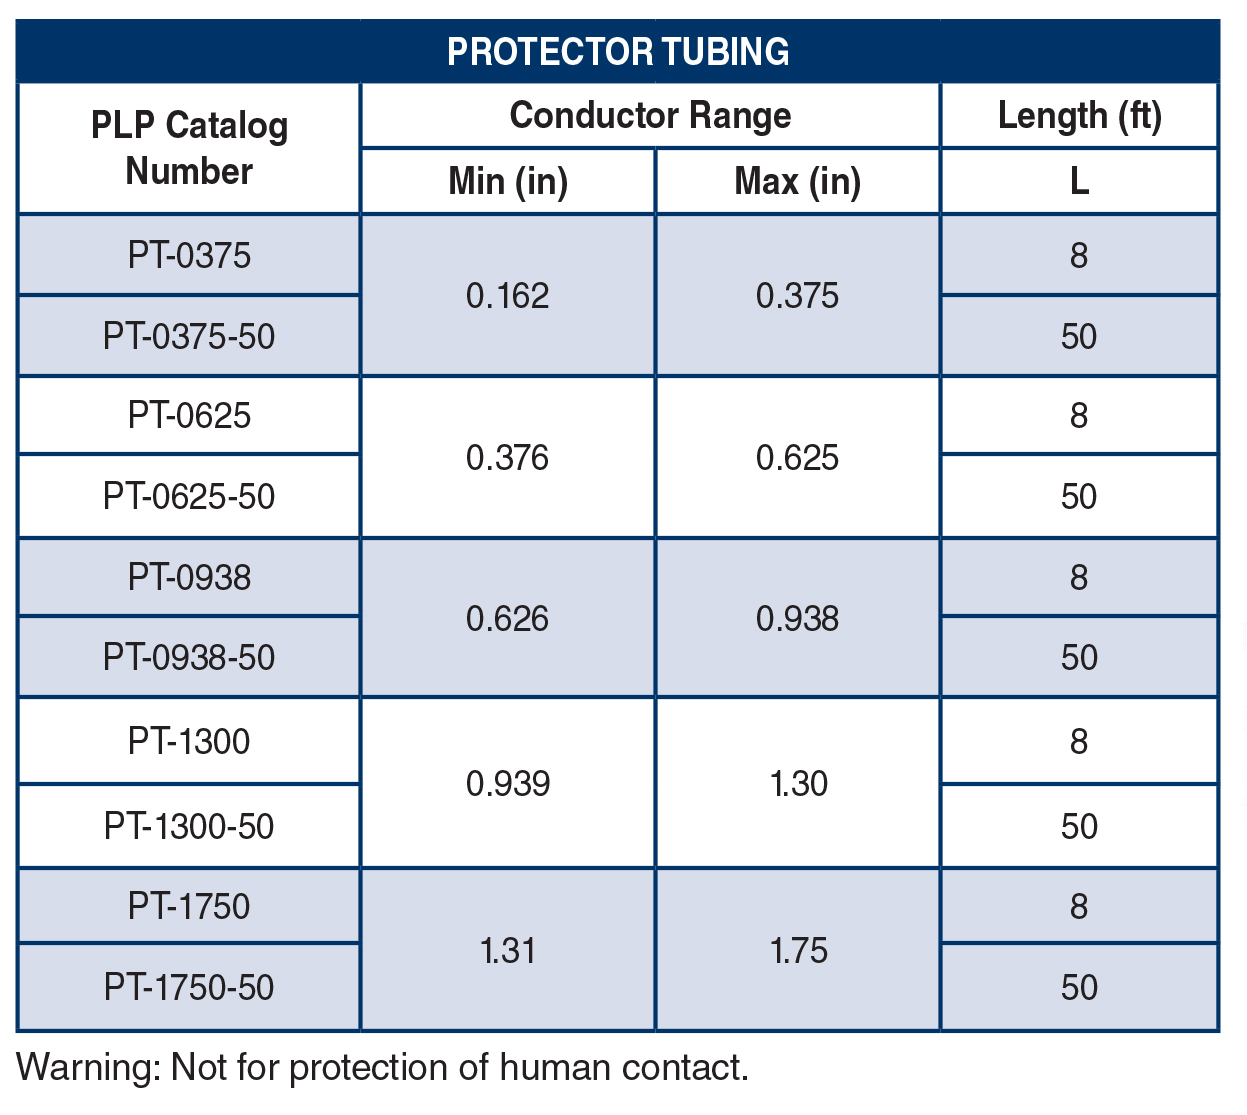 ProtectorTubing-table.jpg